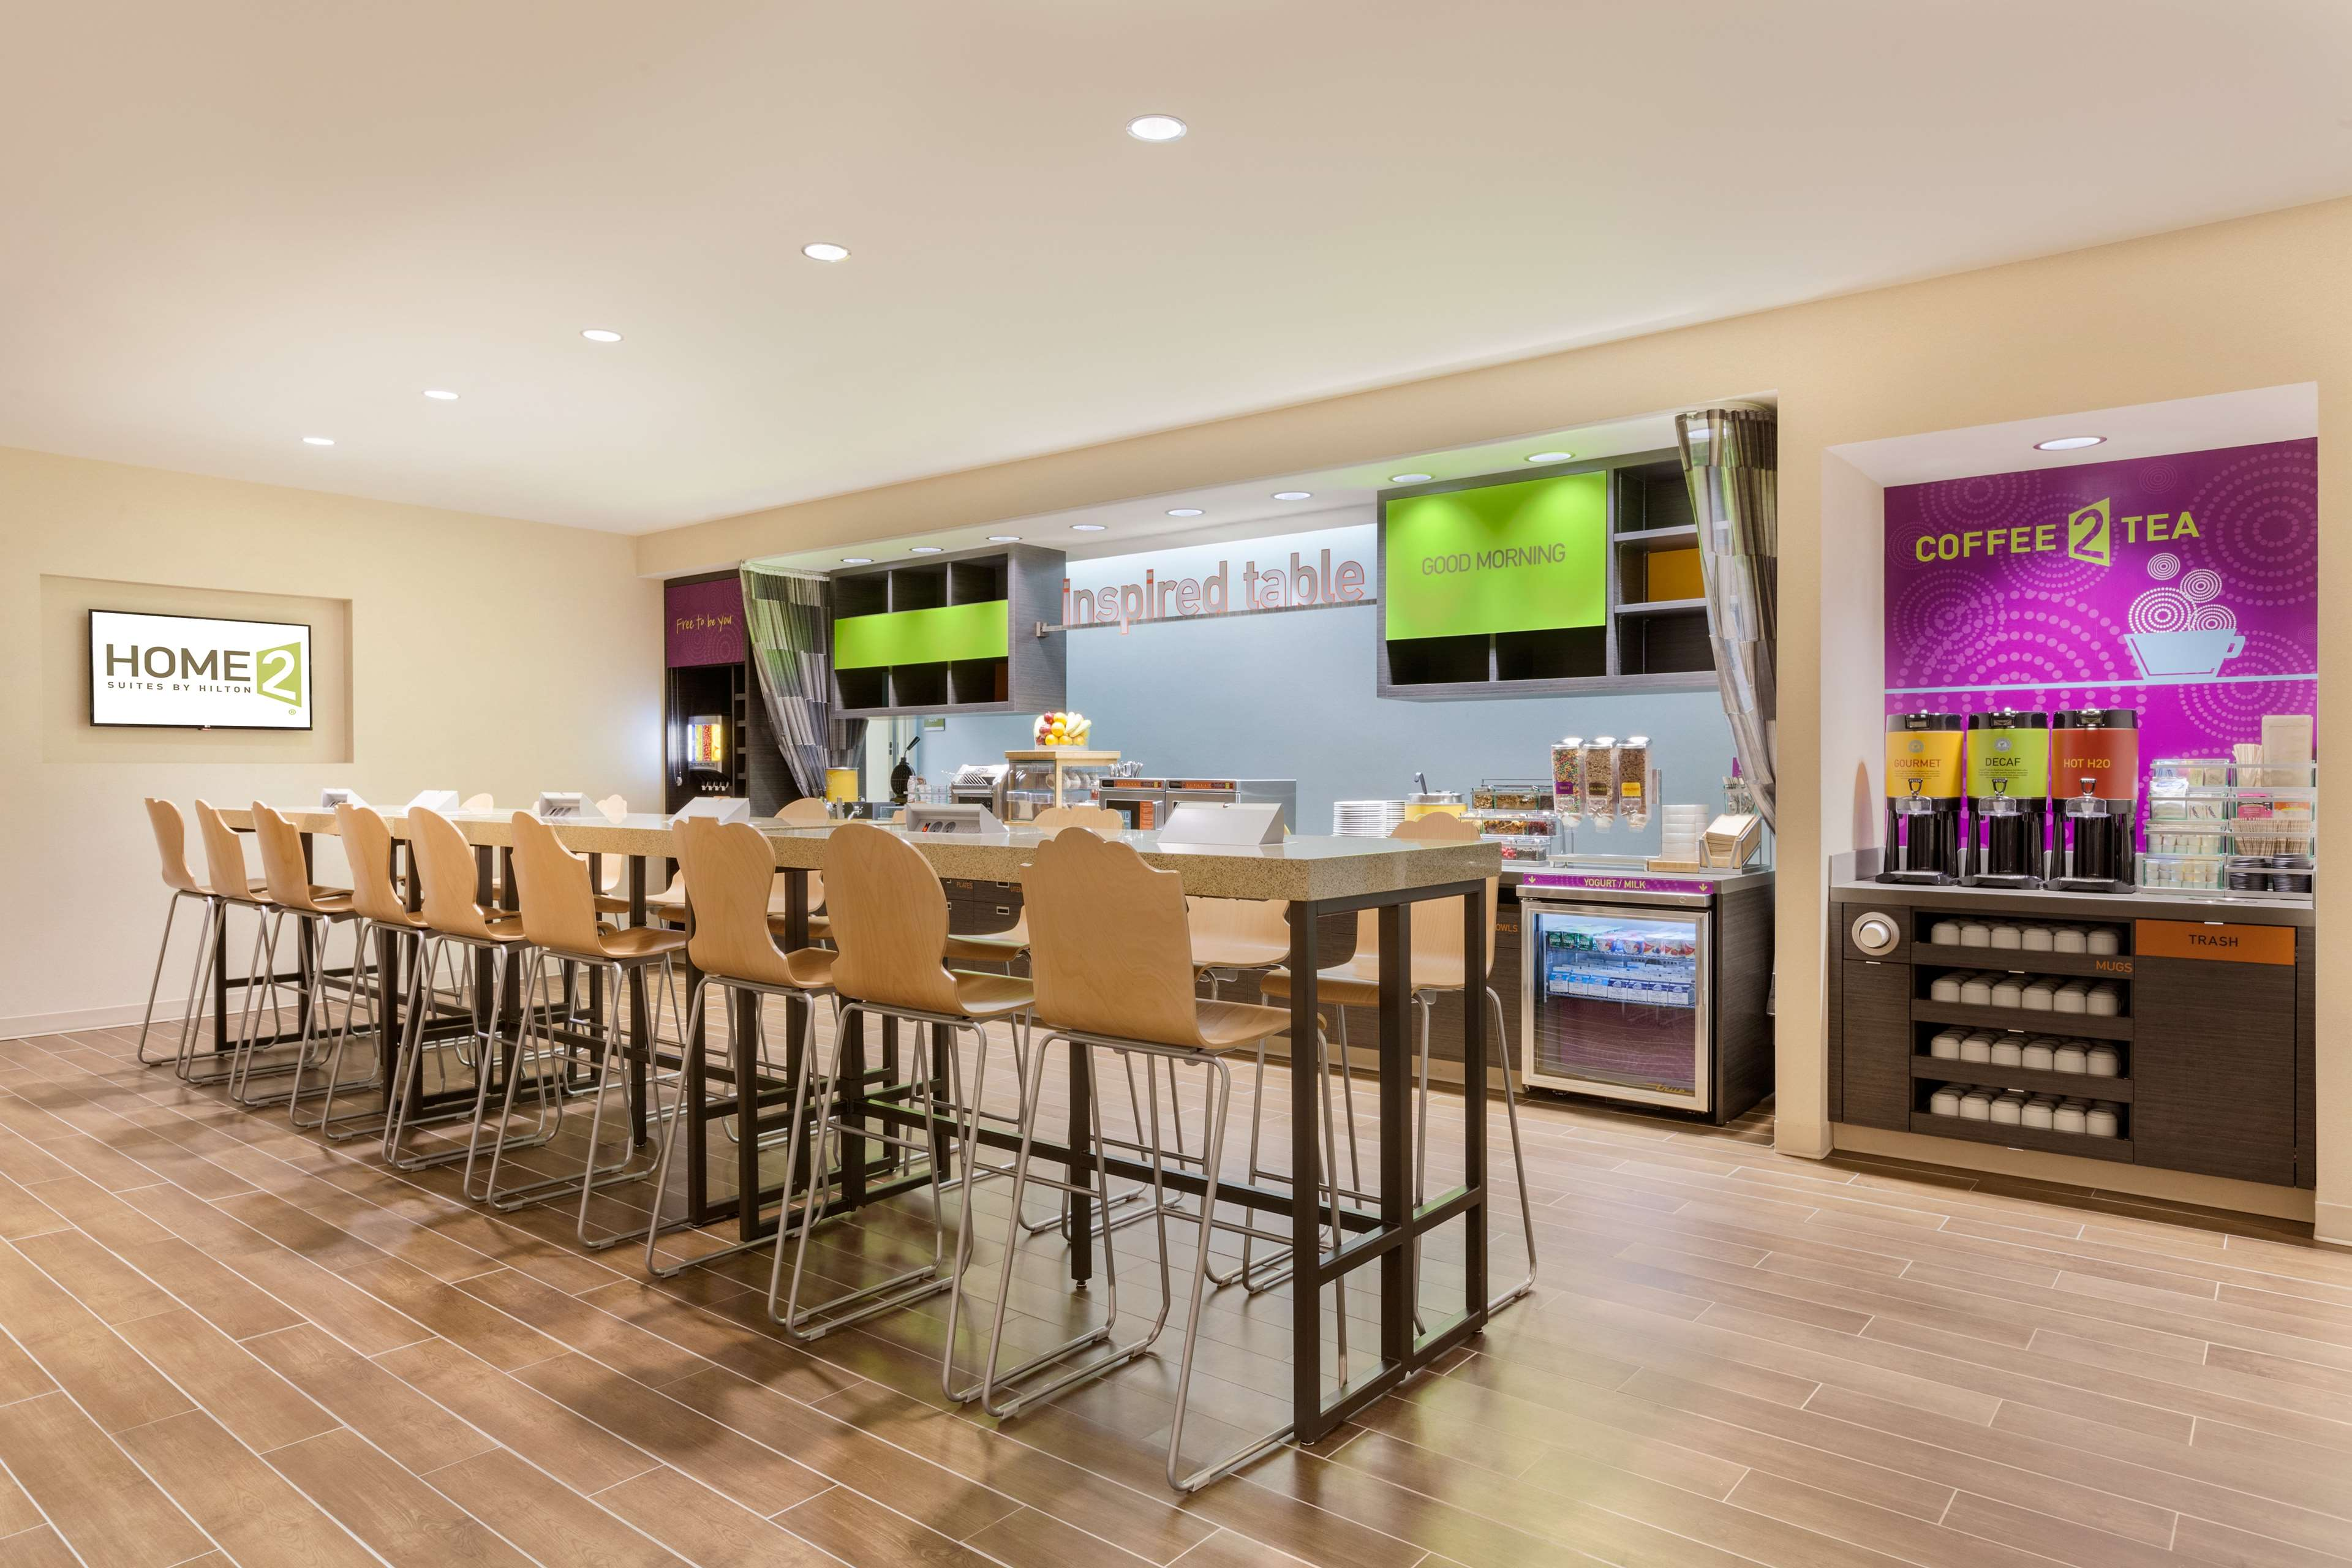 Home2 Suites By Hilton Youngstown West - Austintown image 8